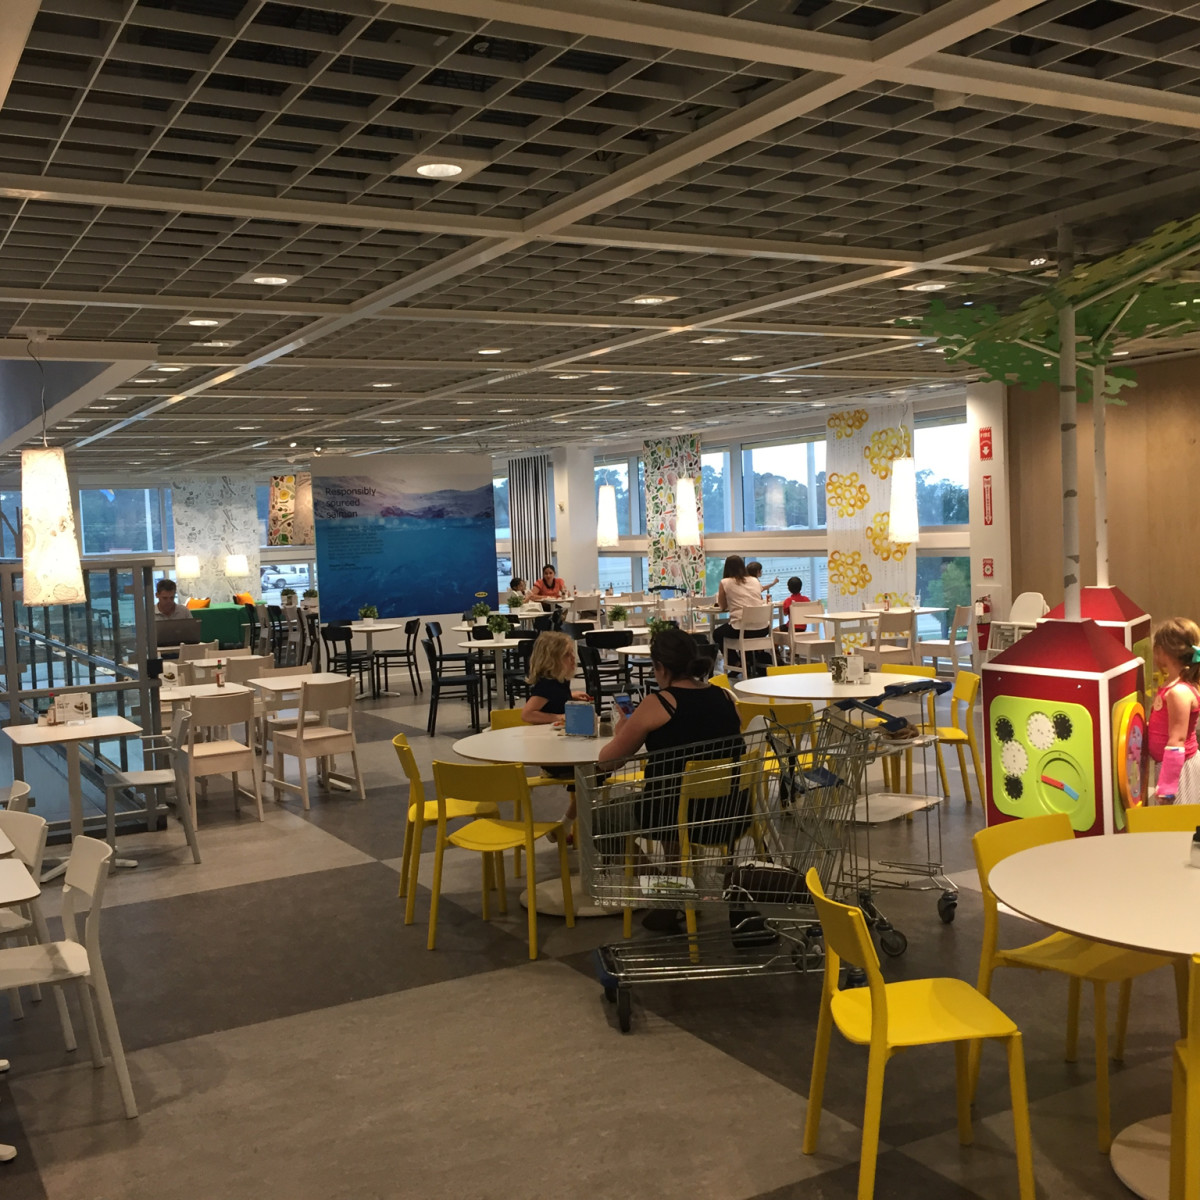 Ikea French Days Not Exactly Destination Dining But Ikea Remodel Does Offer Value